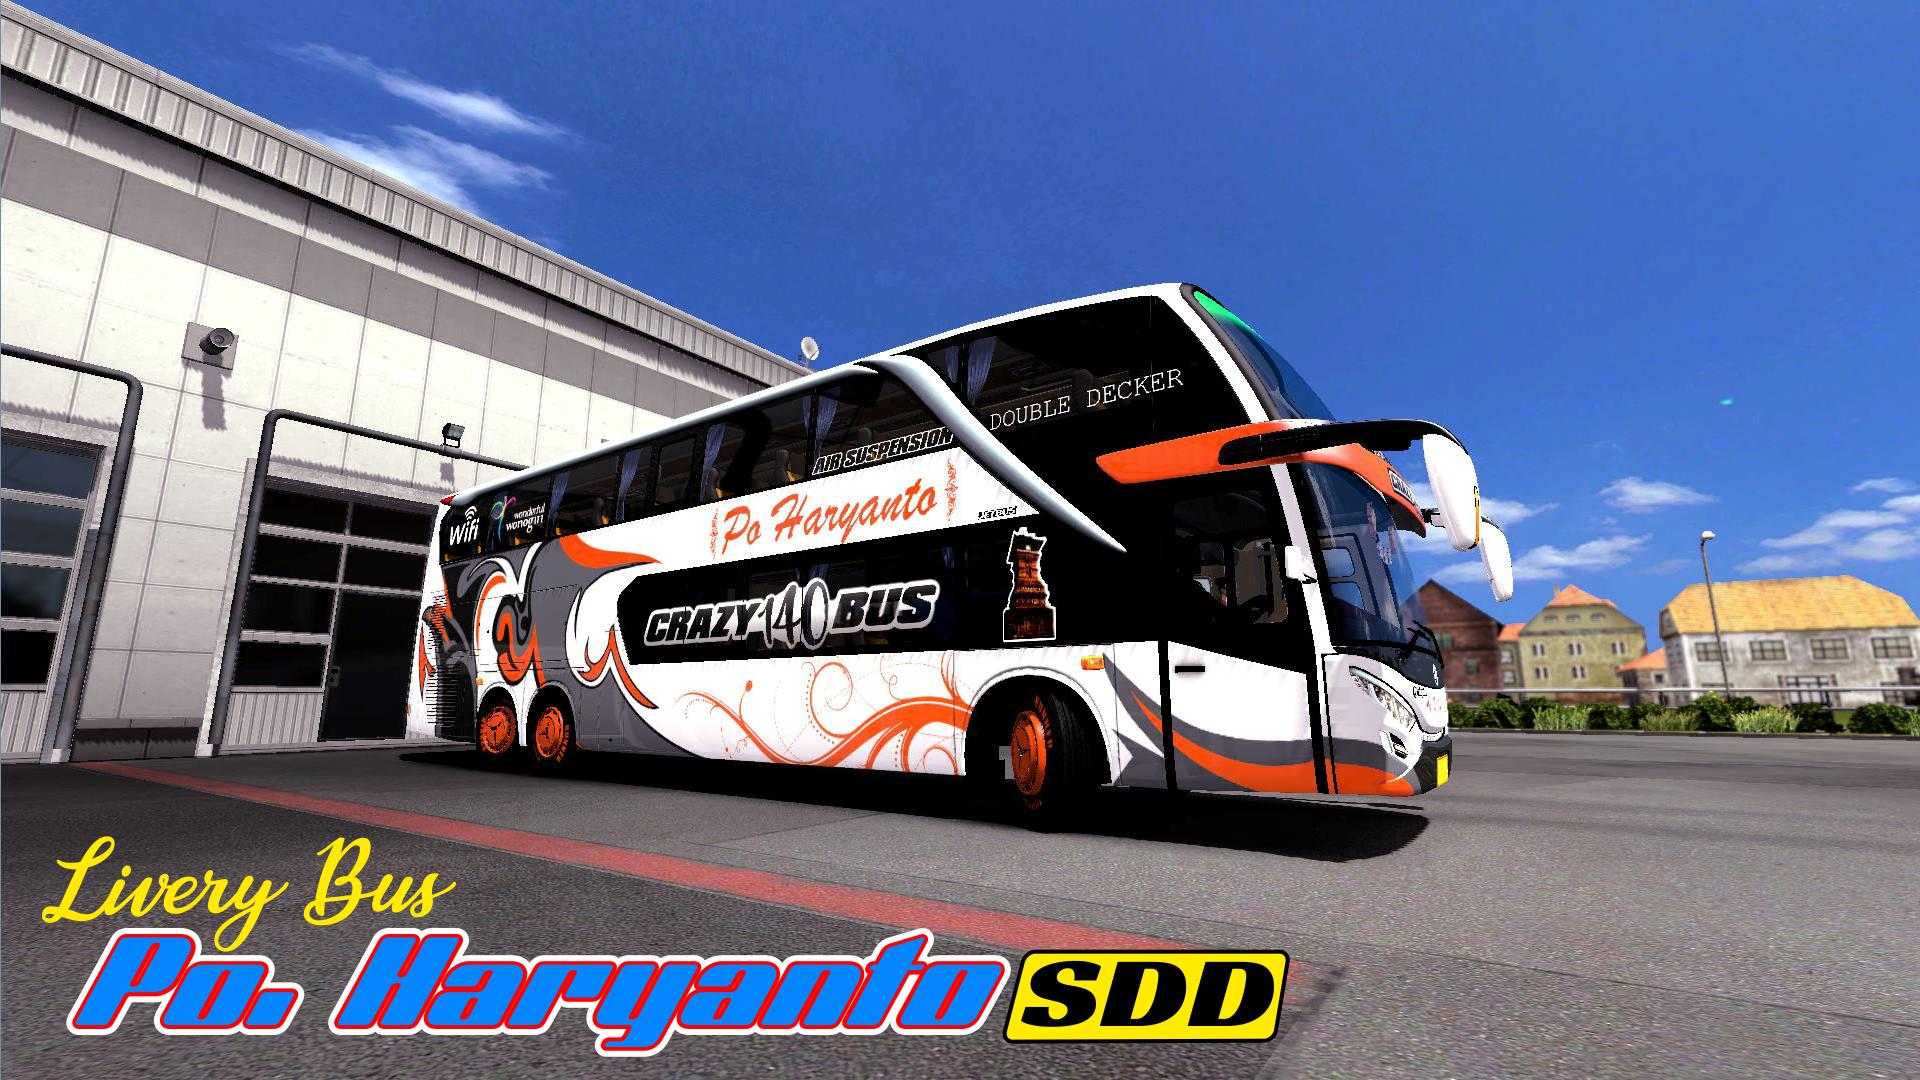 Livery Bus Po Haryanto Jetbus 3 For Android Apk Download